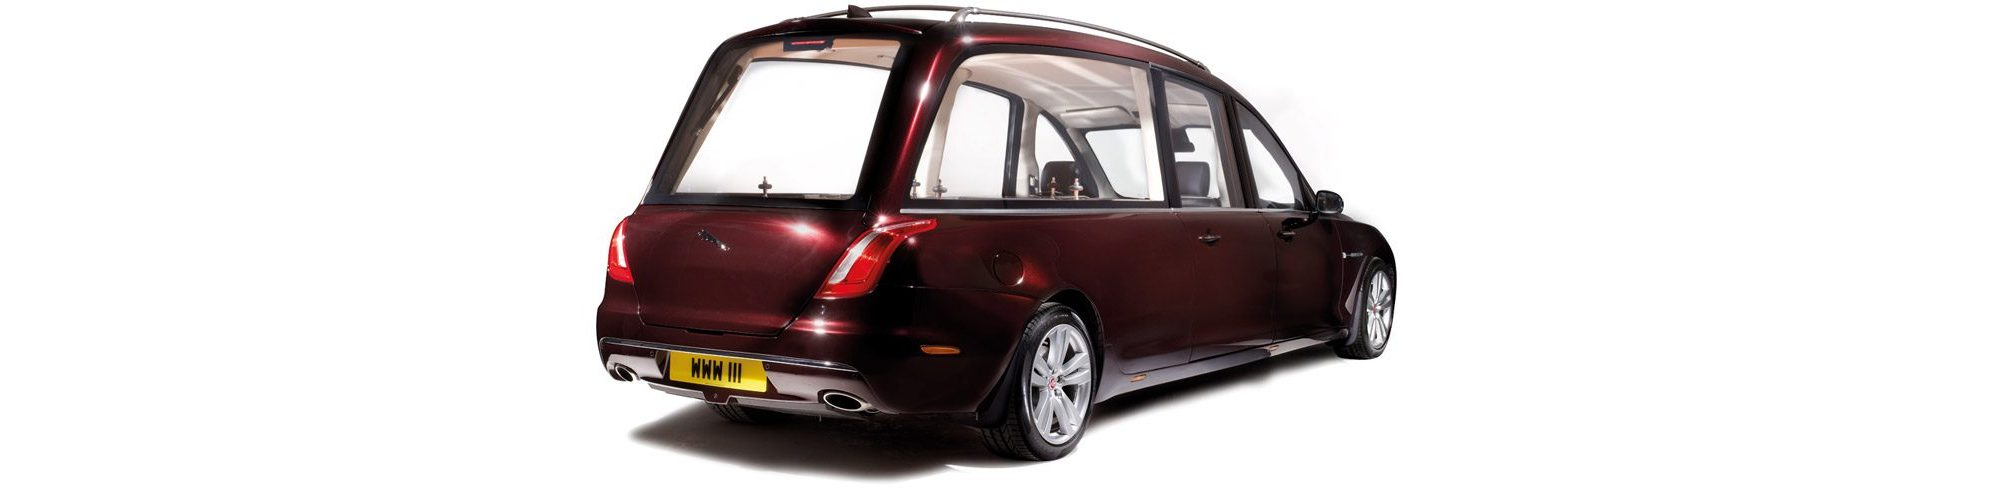 Wilcox 5 Door Hearse based on Jaguar XJ